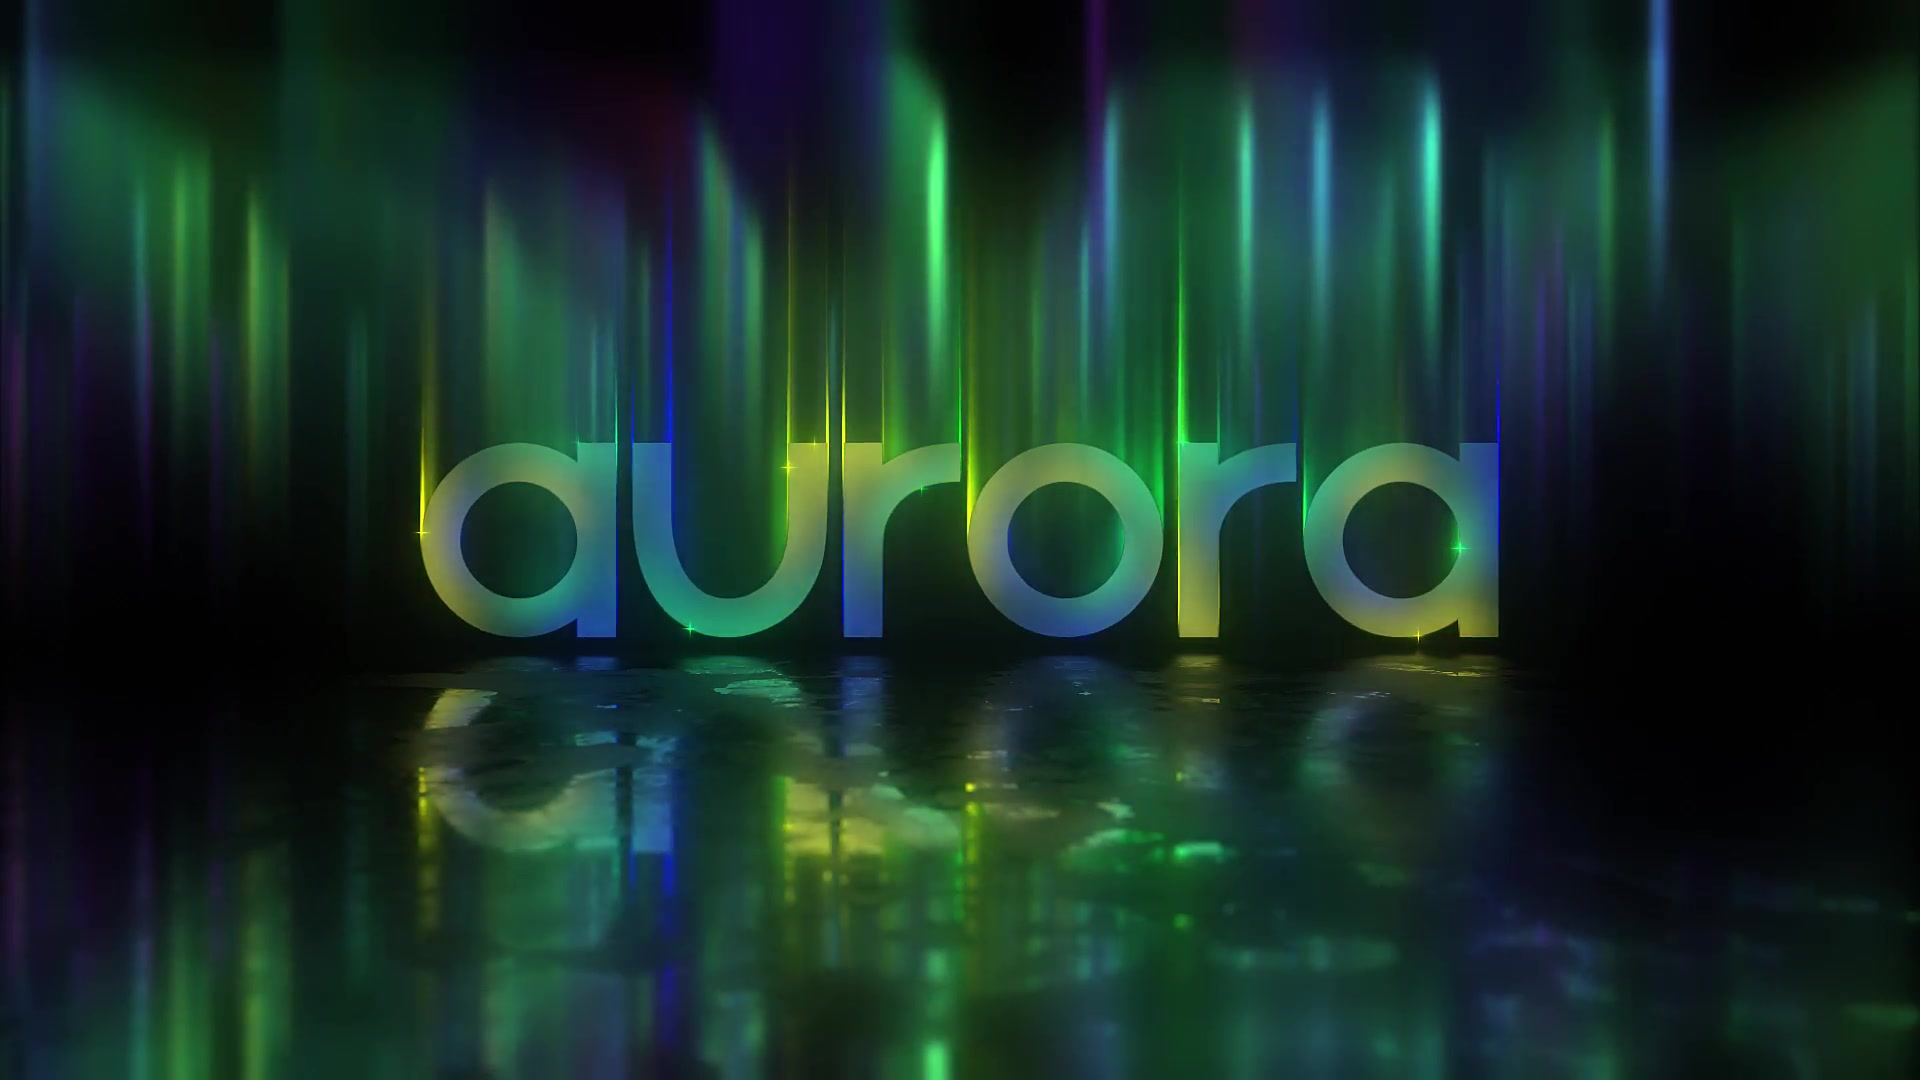 Northern Lights Logo Videohive 25503770 After Effects Image 4